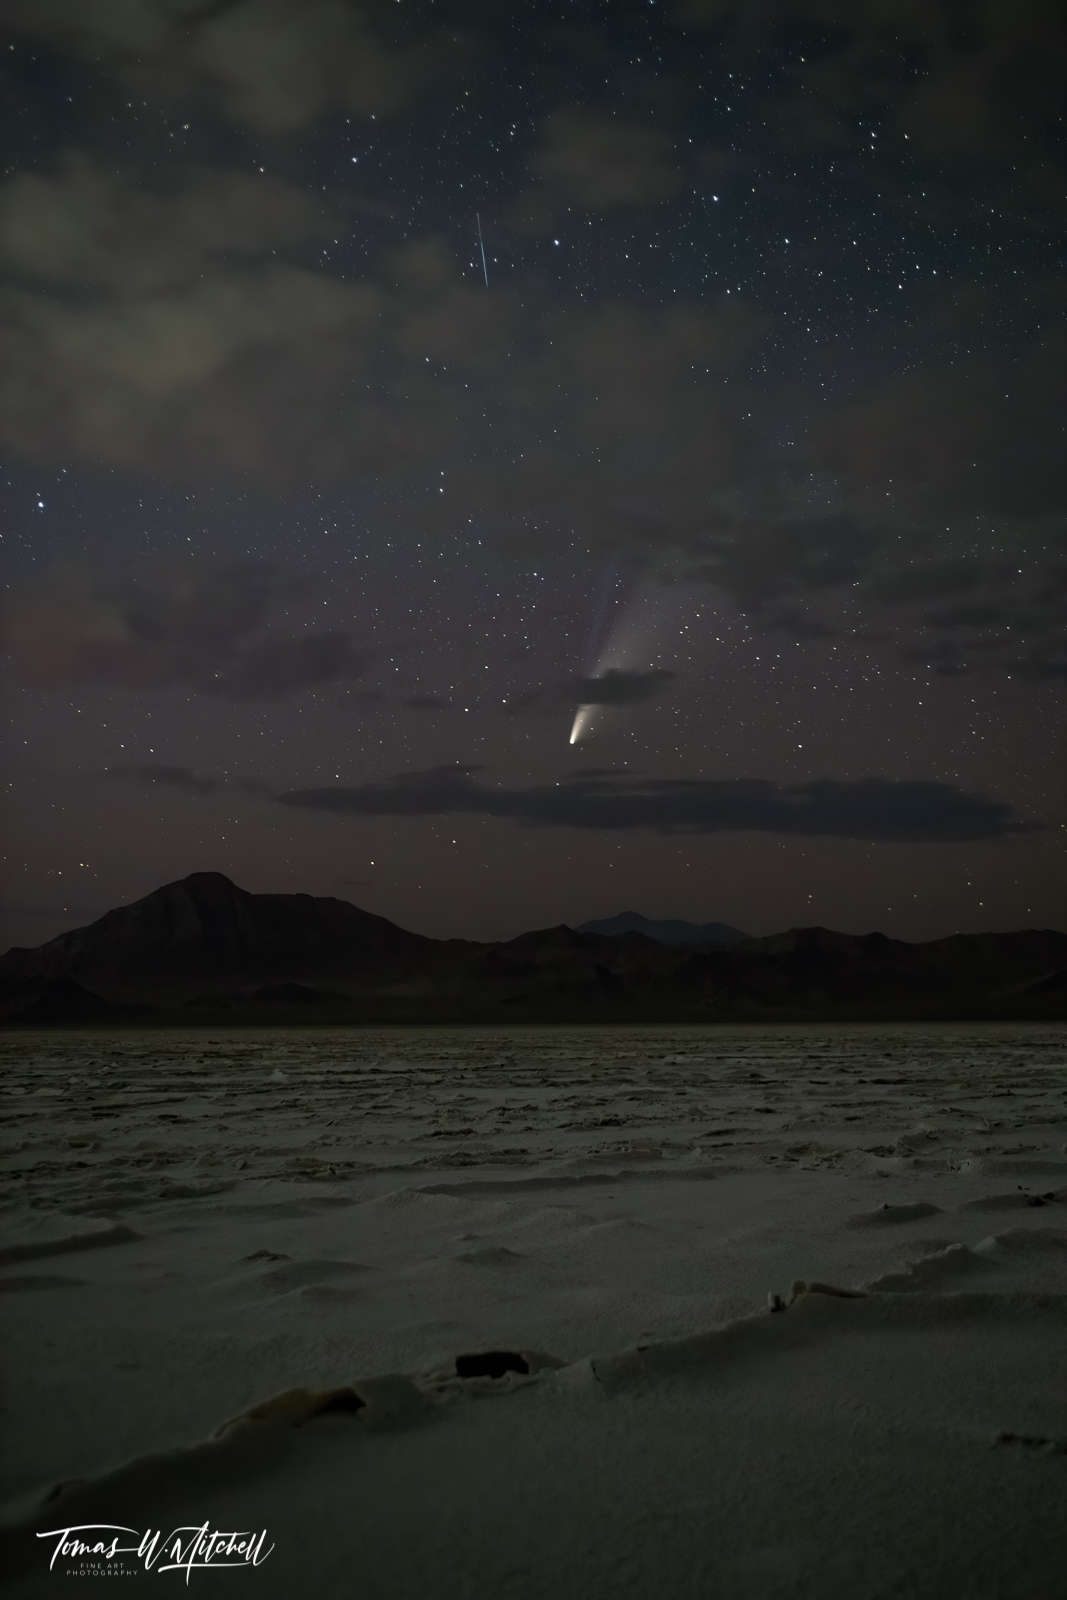 limited edition, fine art, prints, stars, night sky, clouds, comet neowise, bonneville salt flats, utah, desert,  mountains, photograph, celestis, photo